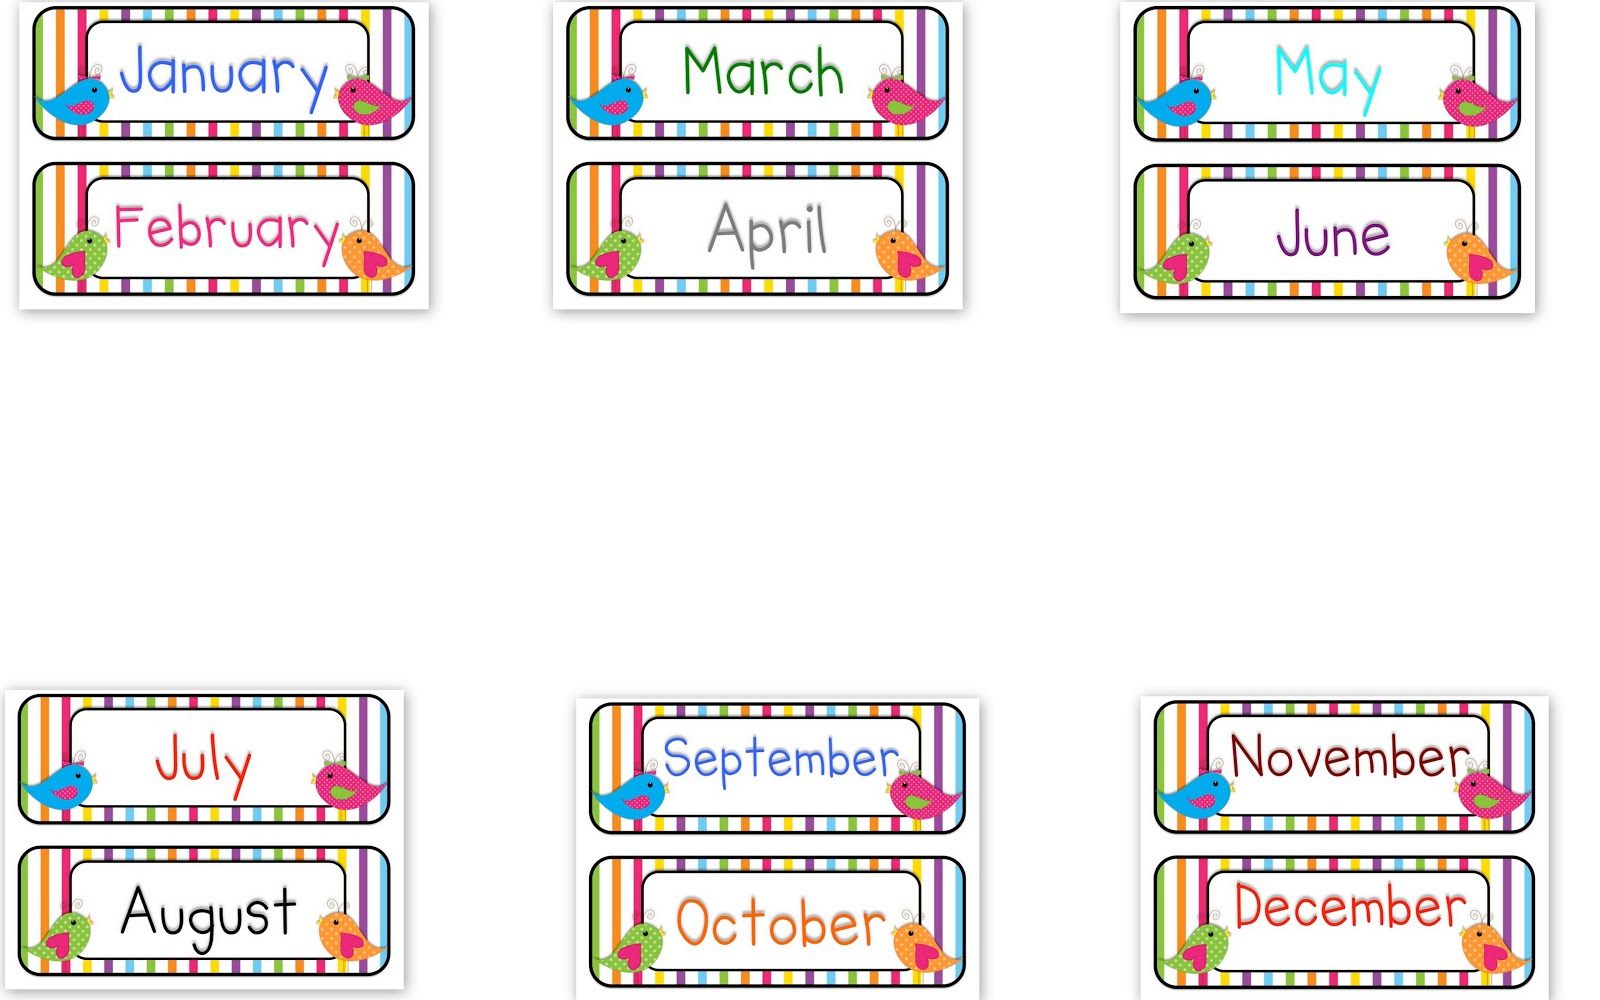 Months of Year Clip Art-Months of Year Clip Art-17